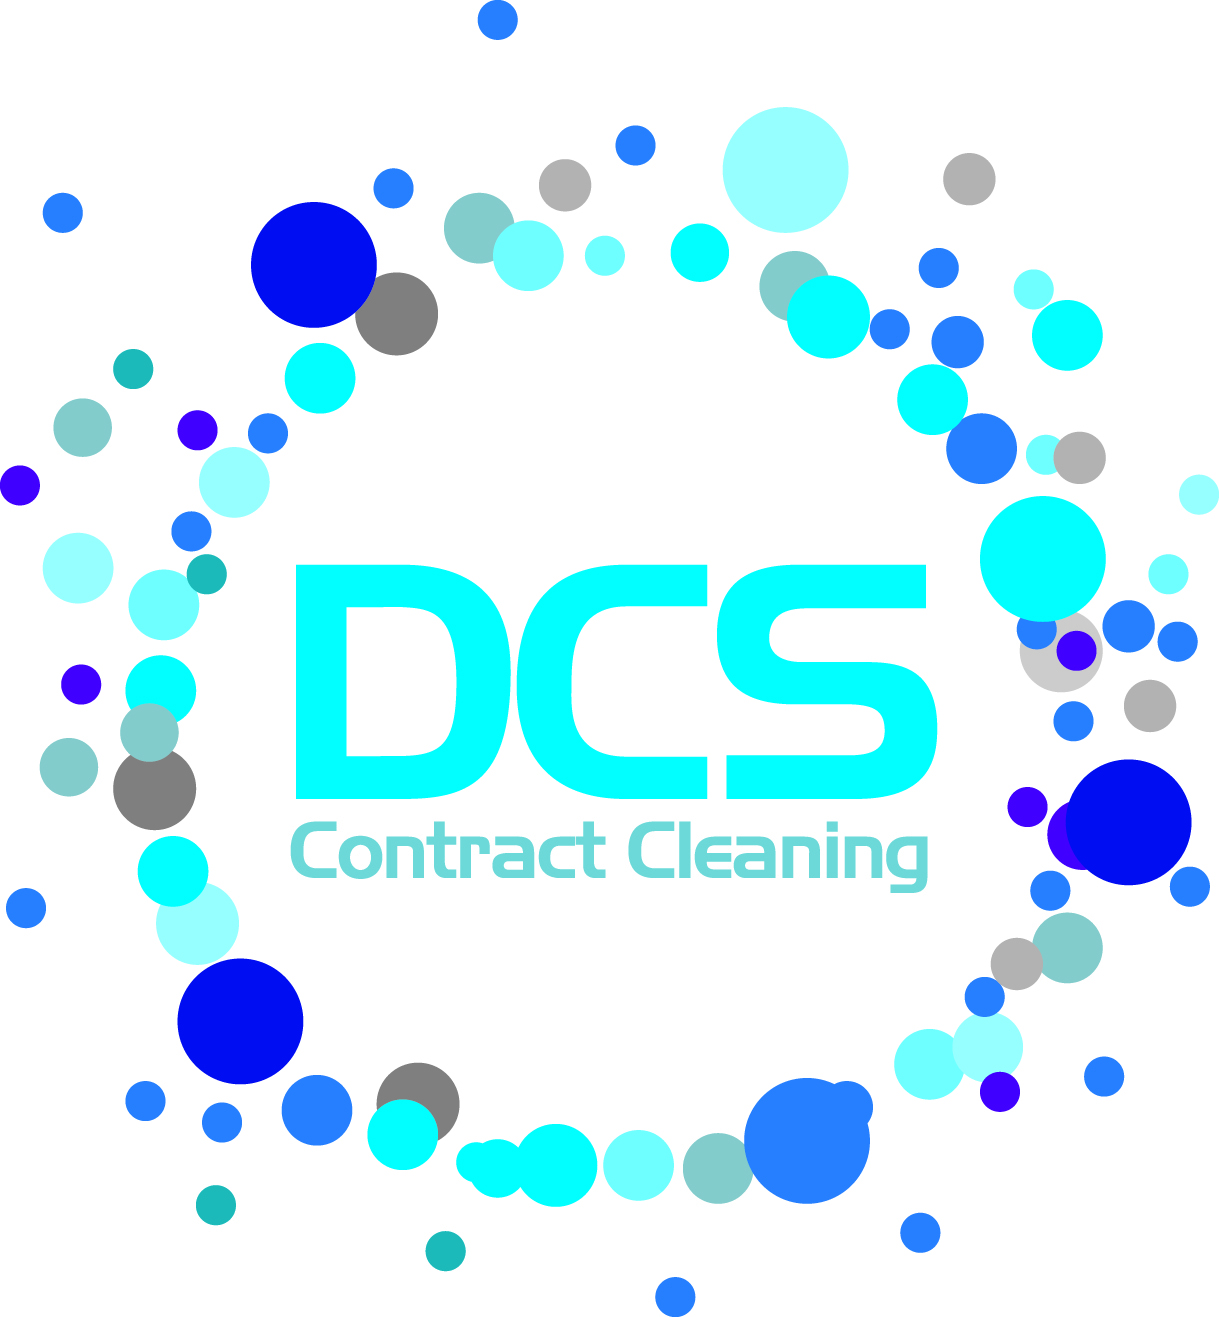 Dedman Contract Cleaning Services